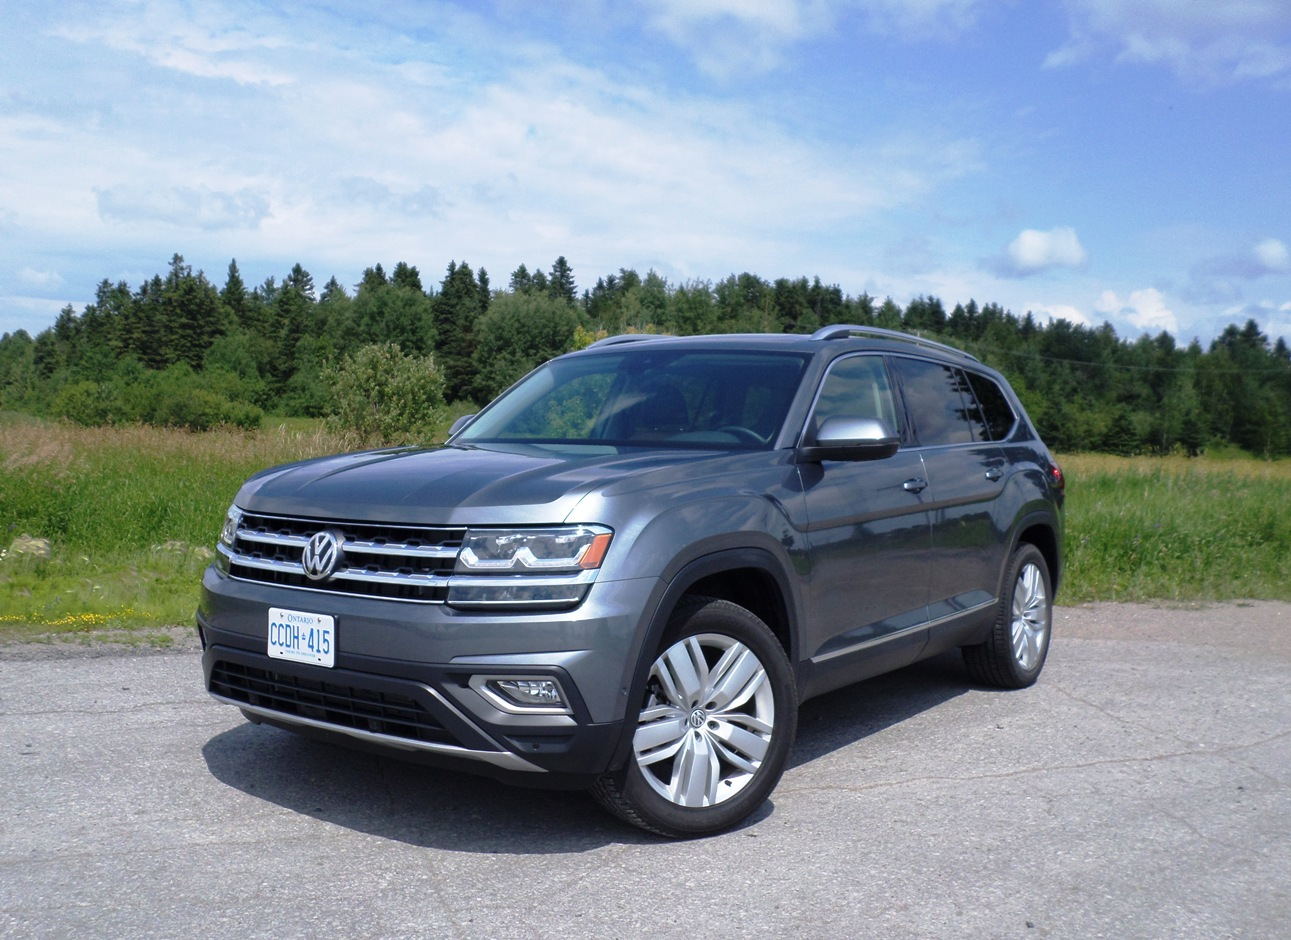 volkswagen atlas 2018 essais routiers actualit s chroniques et bien plus essai. Black Bedroom Furniture Sets. Home Design Ideas